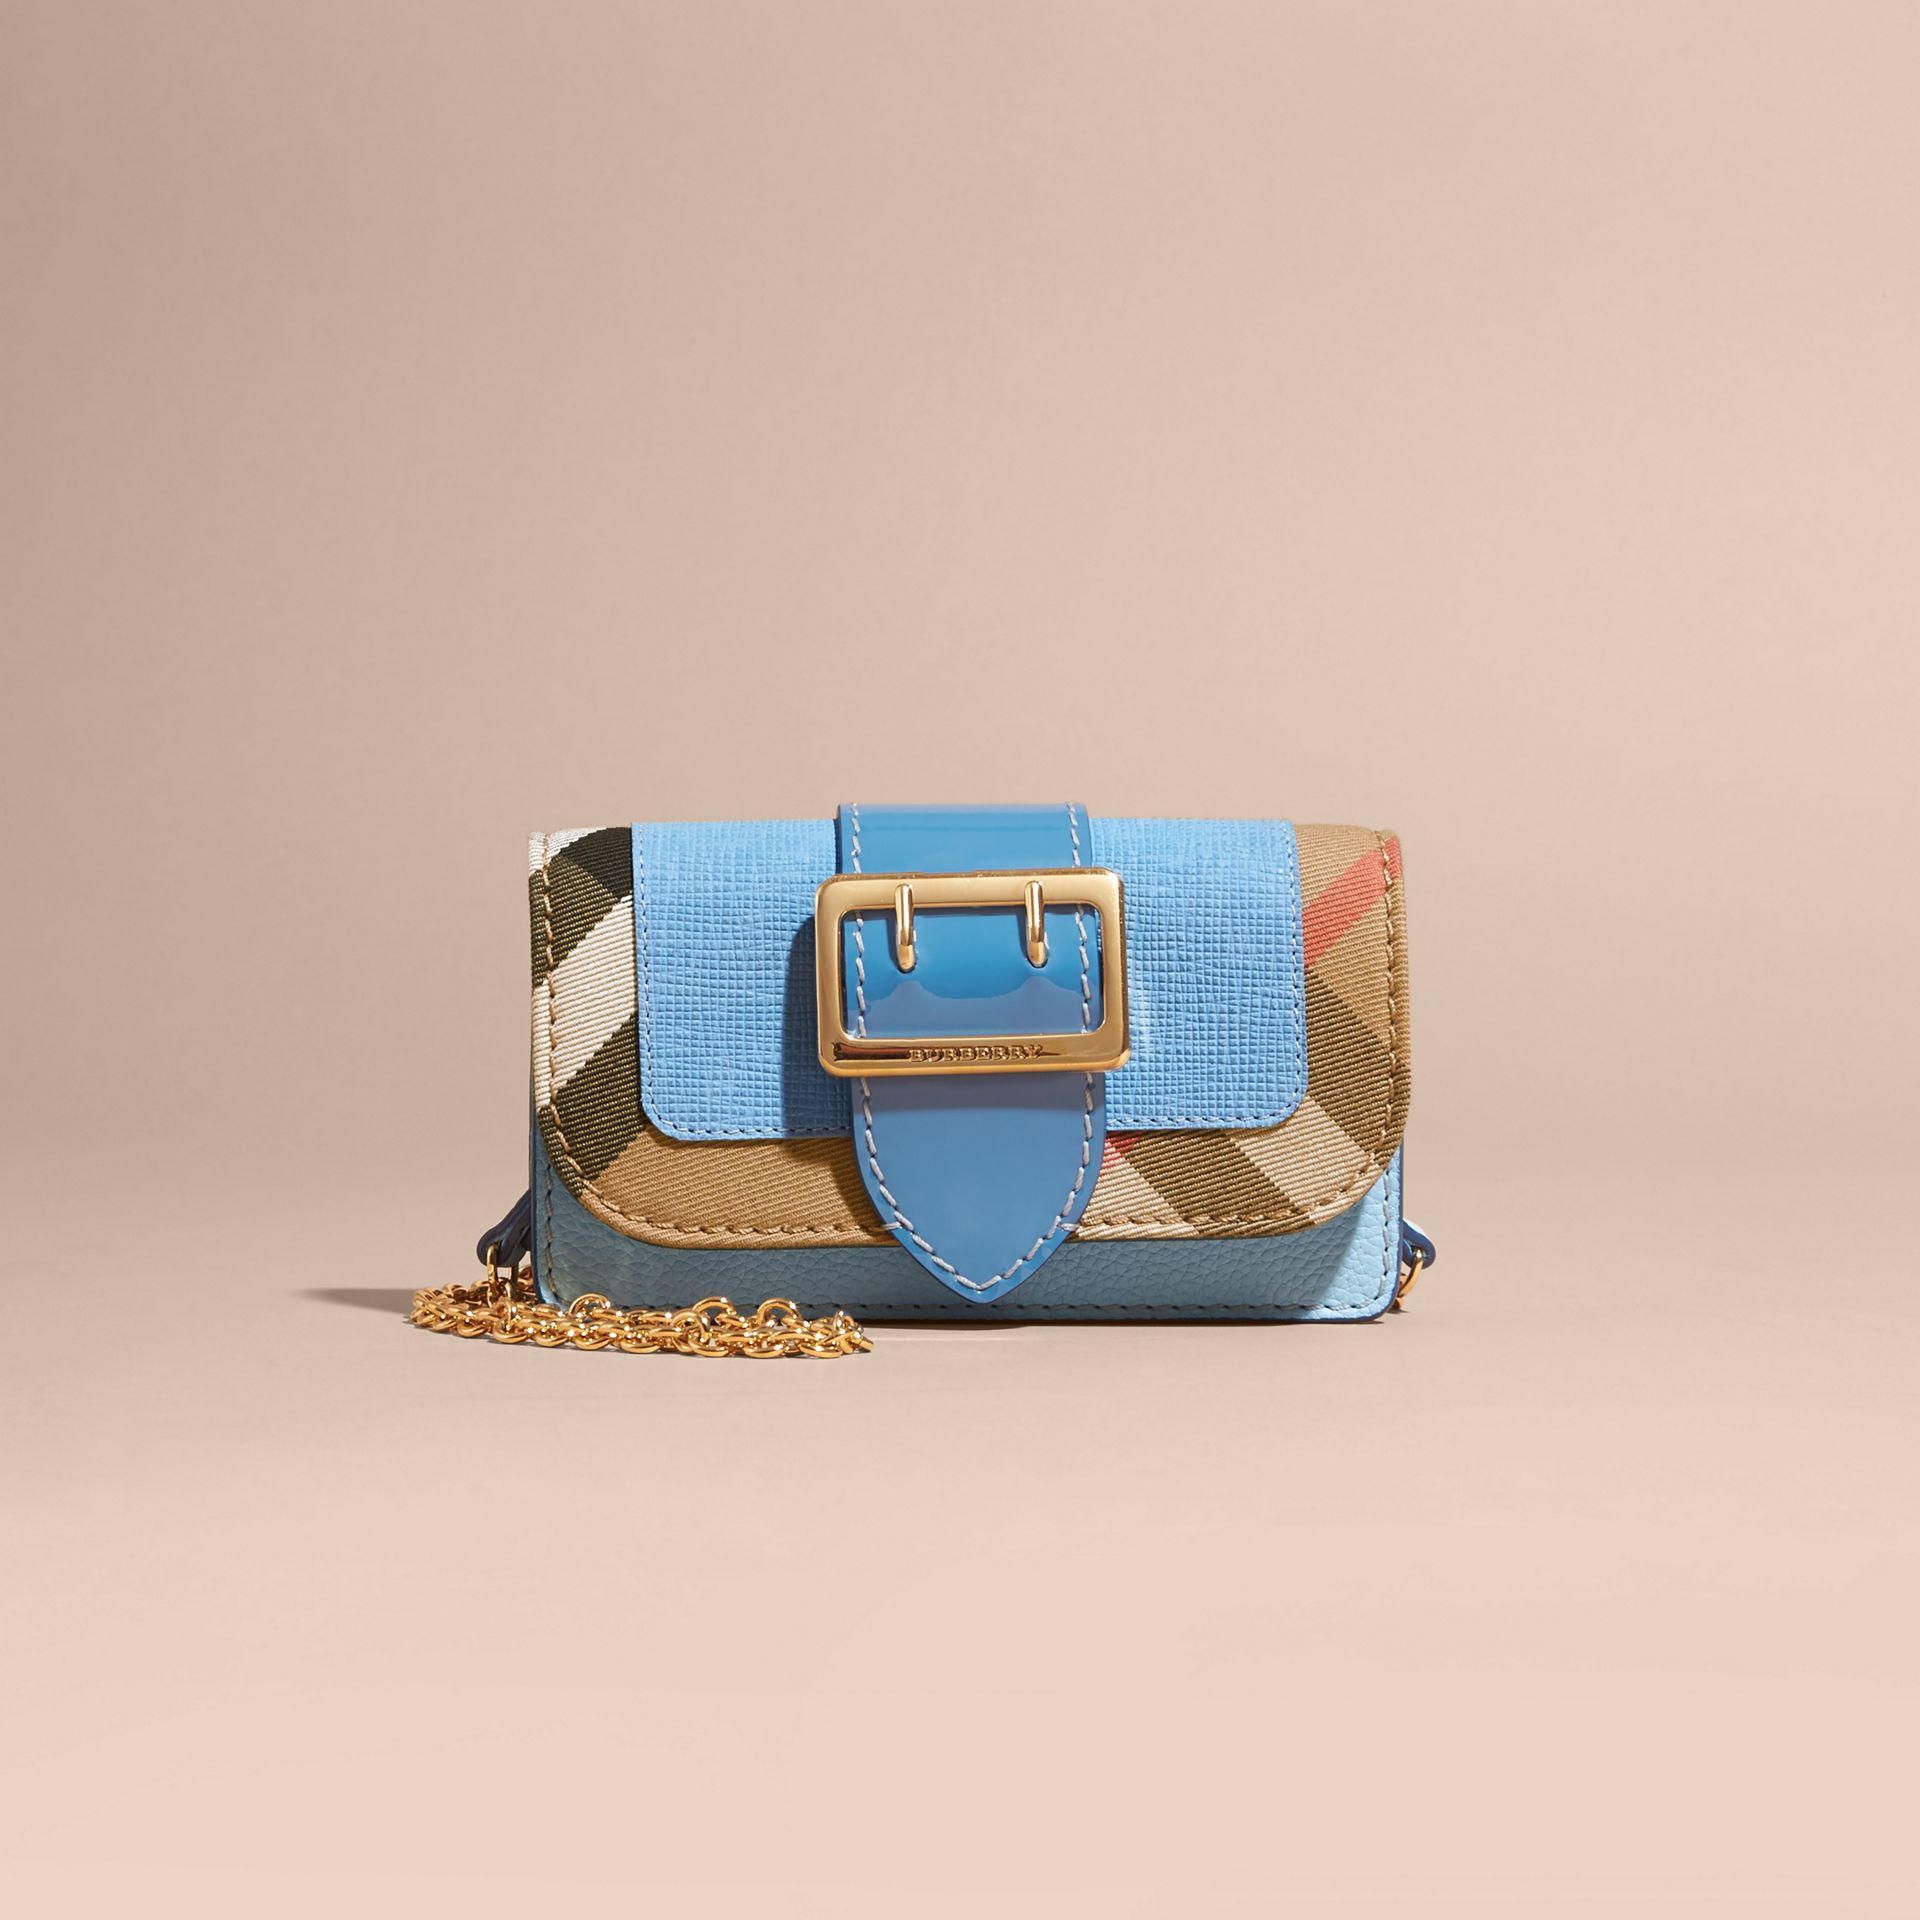 Bright mineral blue The Mini Buckle Bag in Leather and House Check Bright Mineral Blue - gallery image 9